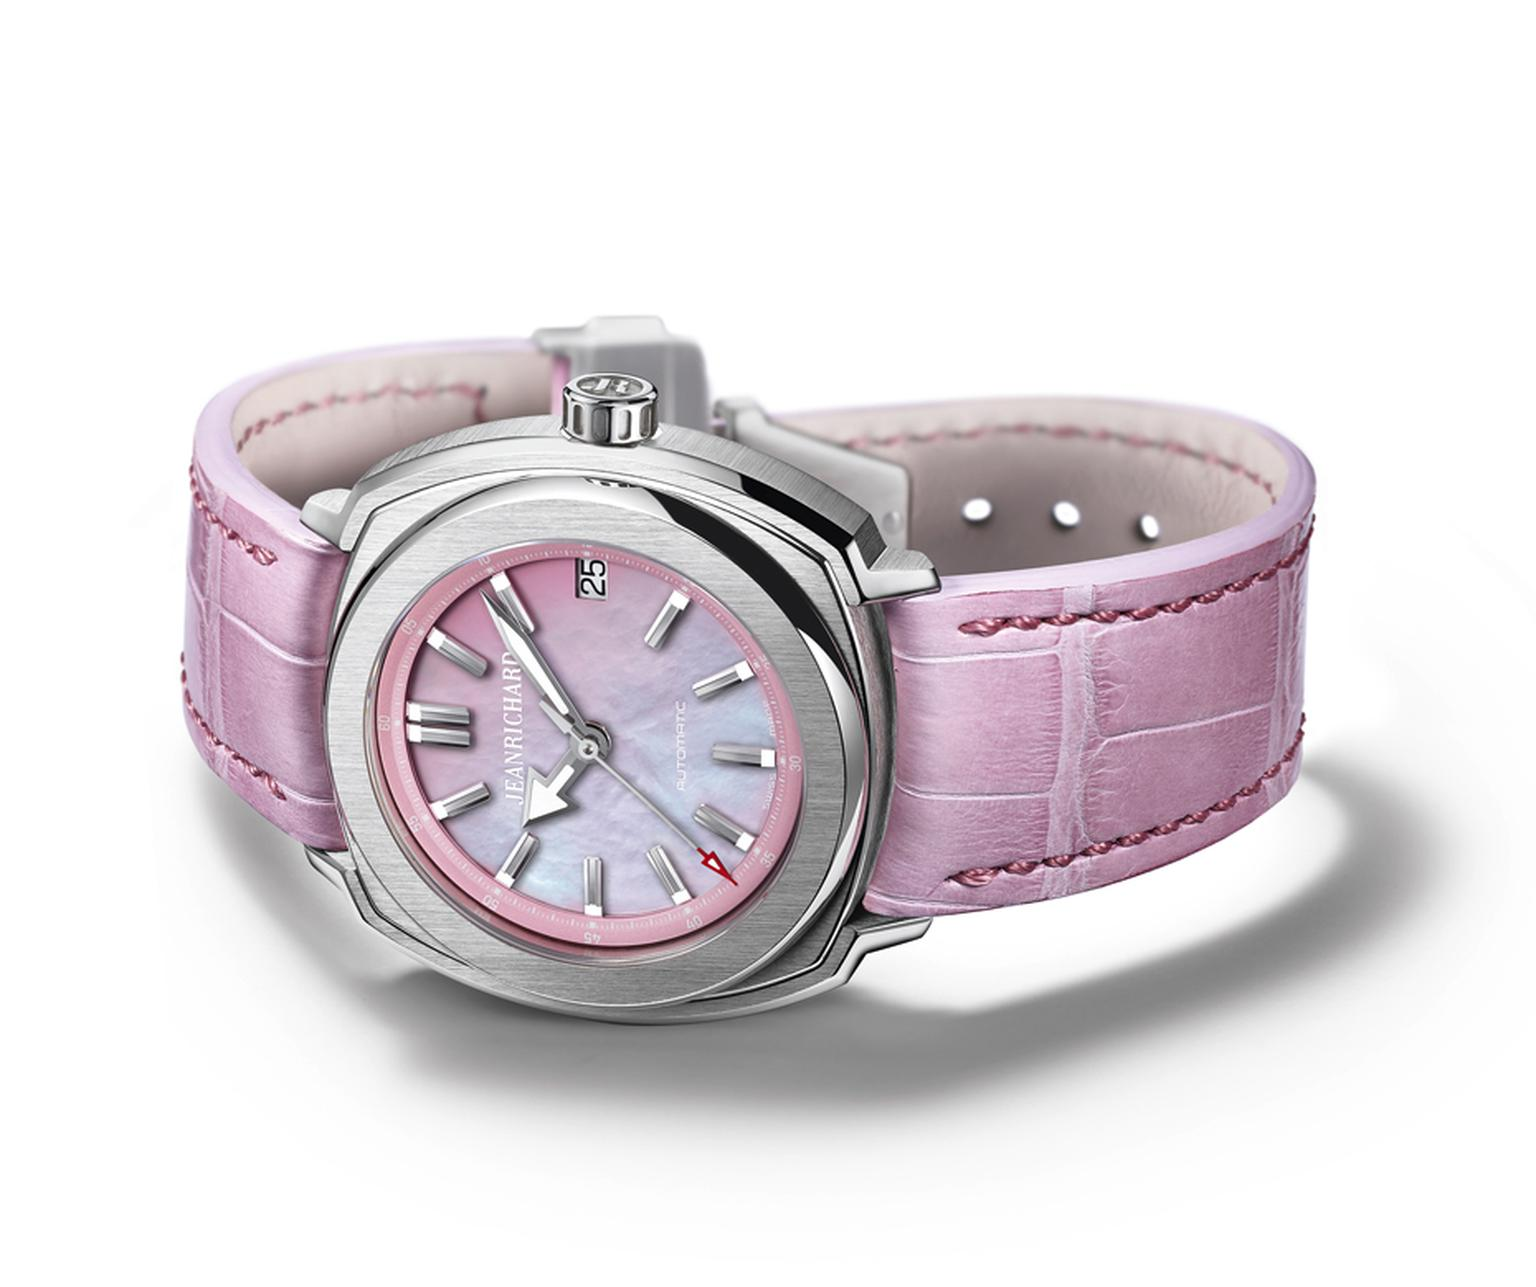 The JeanRichard Terrascope ladies' watch with a pink mother-of-peal dial, pink flange and pink alligator strap is proof positive that pink is not just a colour for Barbies. With its tiered, 39 mm stainless steel case, the watch fuses its innate sporty spi